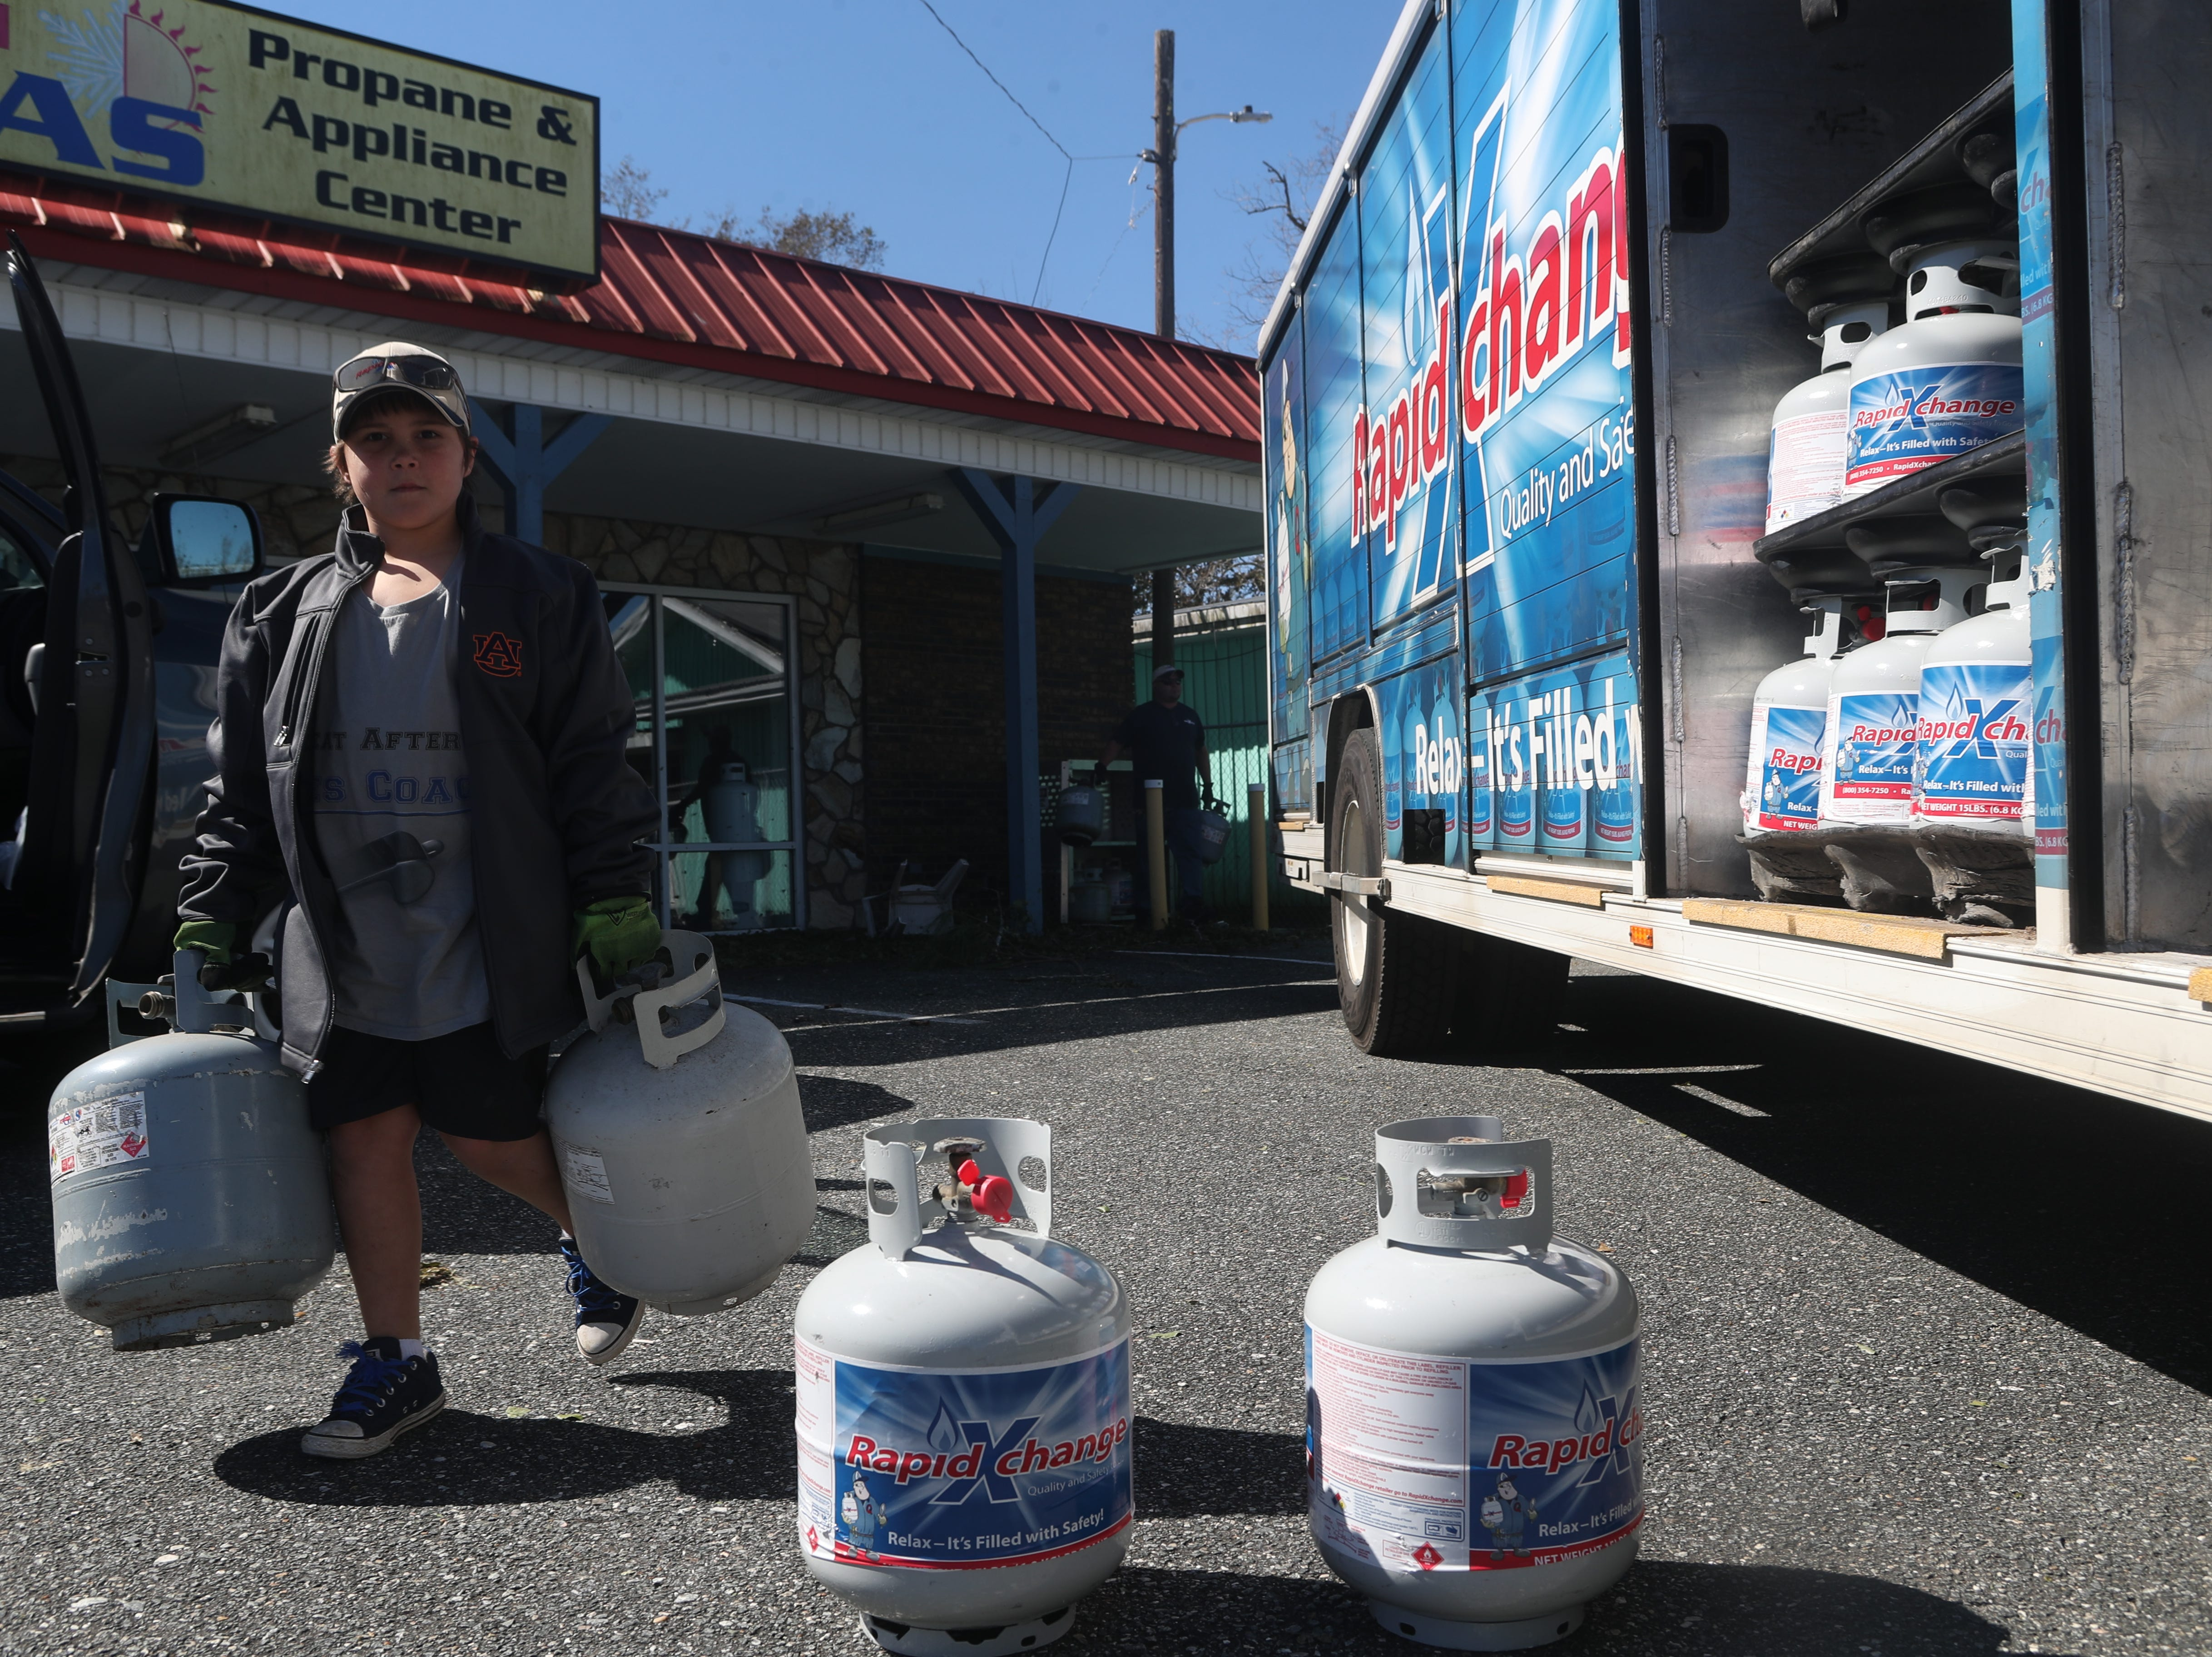 Trent Killingsworth, 10, helps his dad Todd deliver propane to Blountstown, Fla. in the aftermath of Hurricane Michael Friday, Oct. 12, 2018.